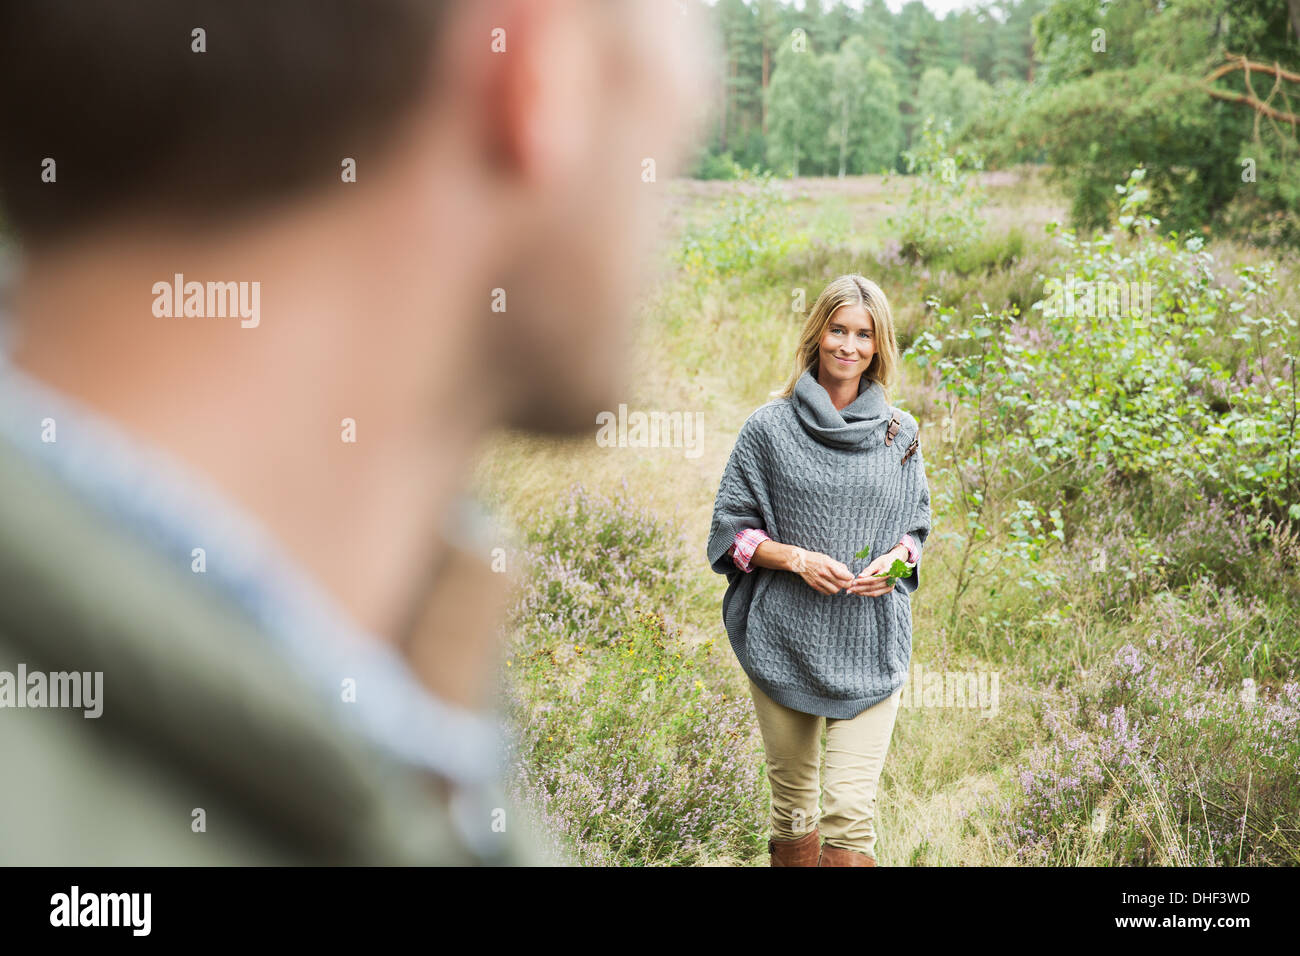 Mid adult woman holding leaf, man blurred in foreground - Stock Image